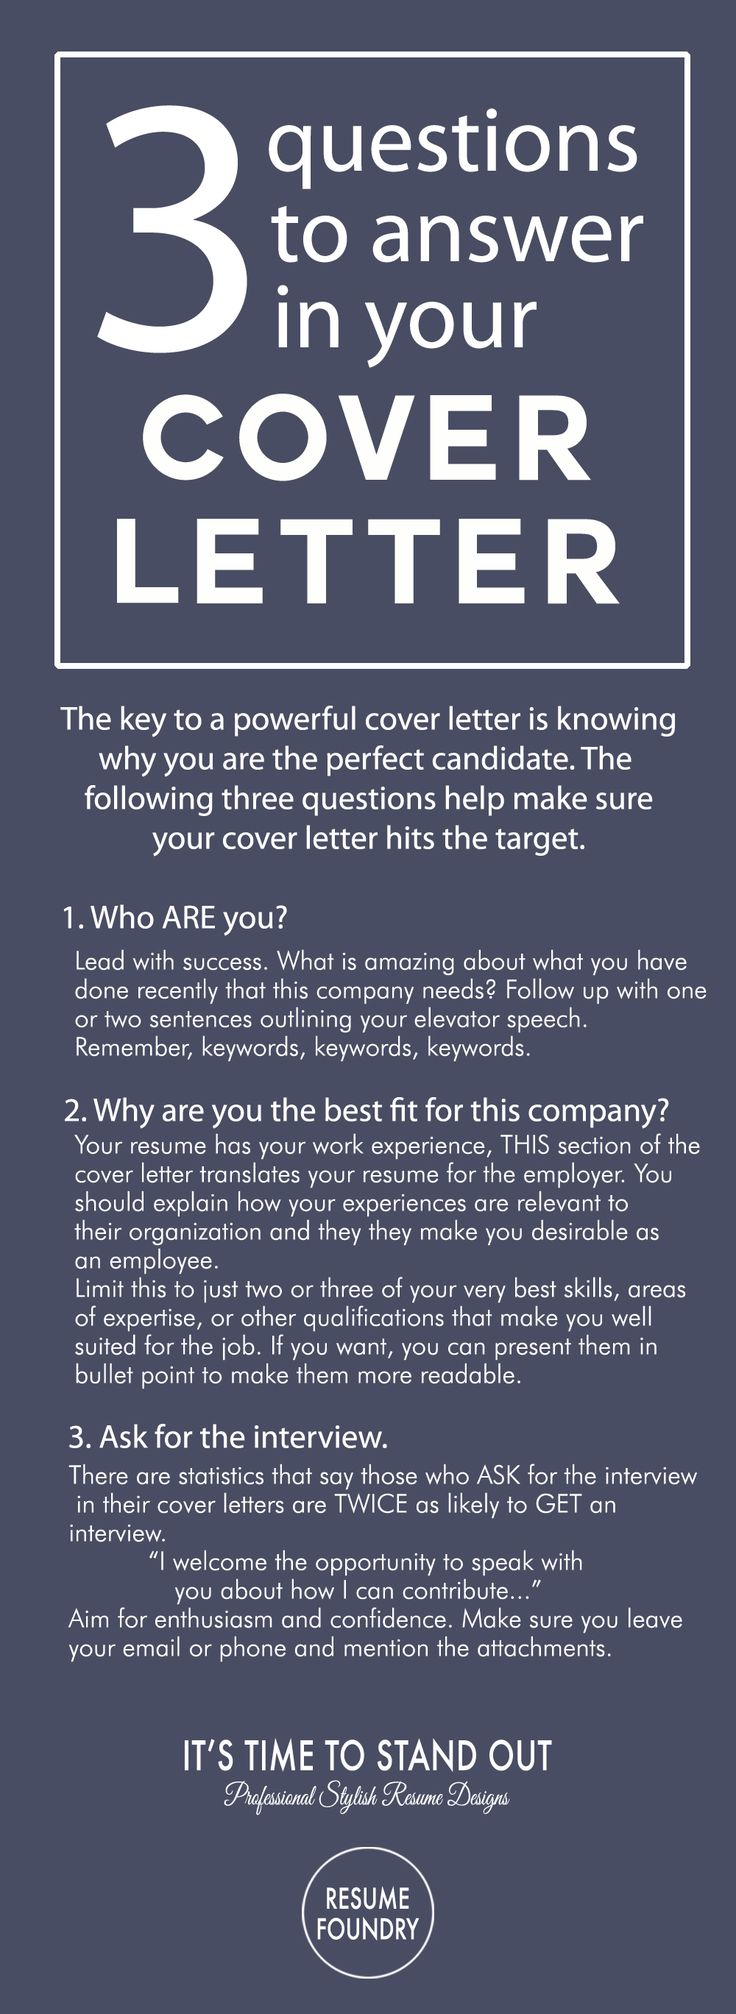 Cto Cover Letter   Resume Format Download Pdf Cover Letter Example job resignation letter sample cover letter Resume  Cover Letter Example Graphic Design Jobresumepro